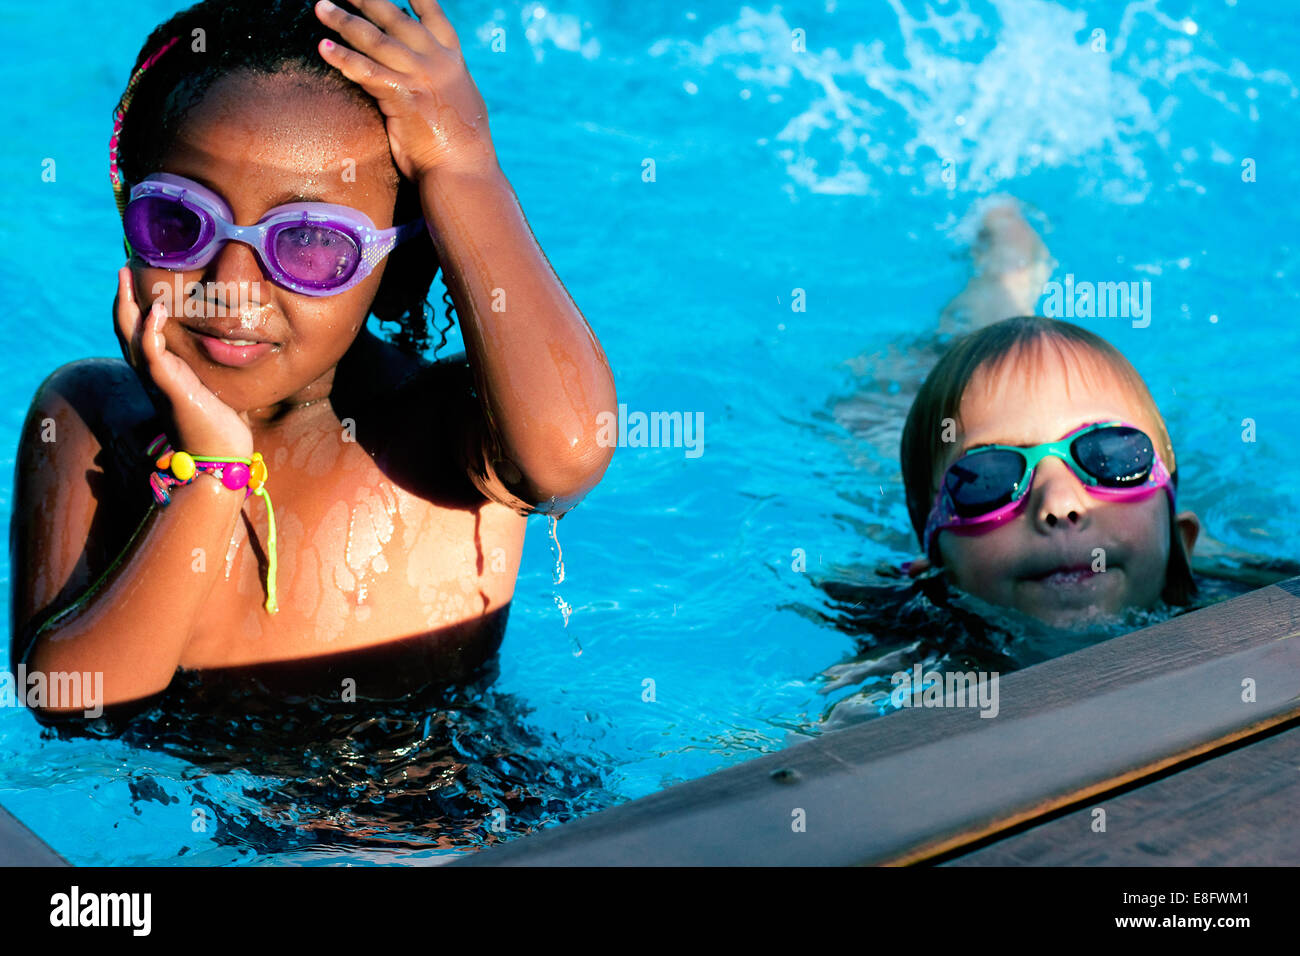 Girl in swimming pool smiling stock photos girl in swimming pool smiling stock images alamy for Female only swimming pool london